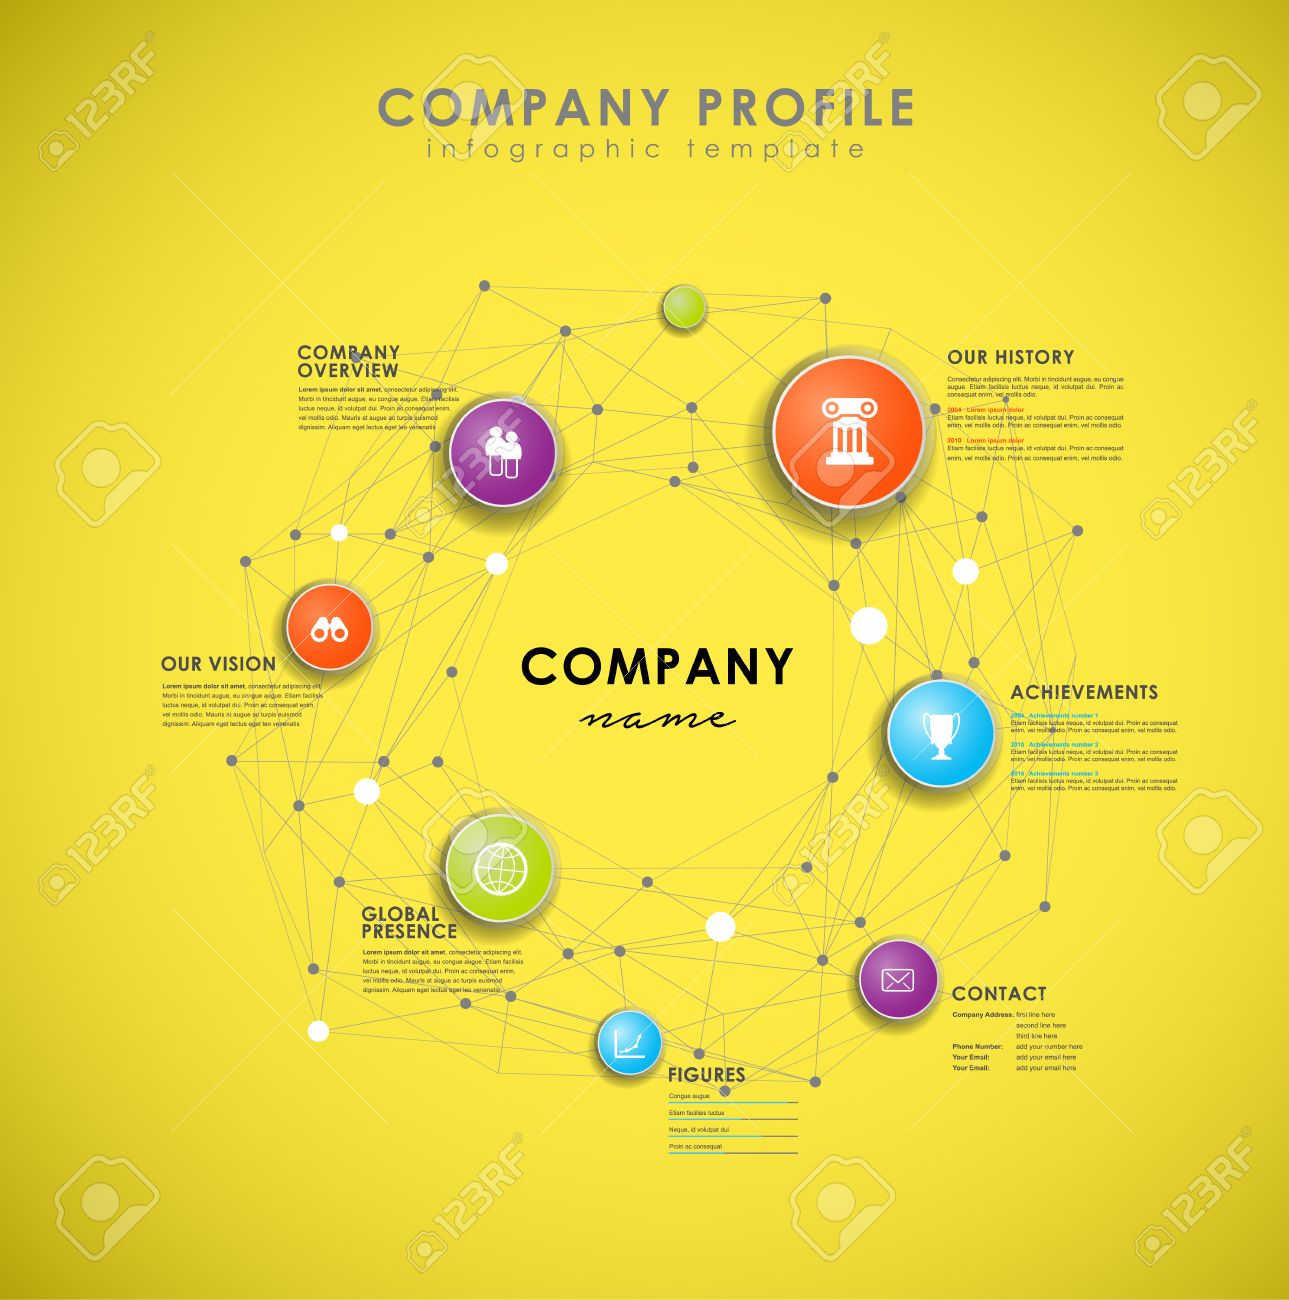 Company Profile Overview Template With Colorful Circles On Yellow ...